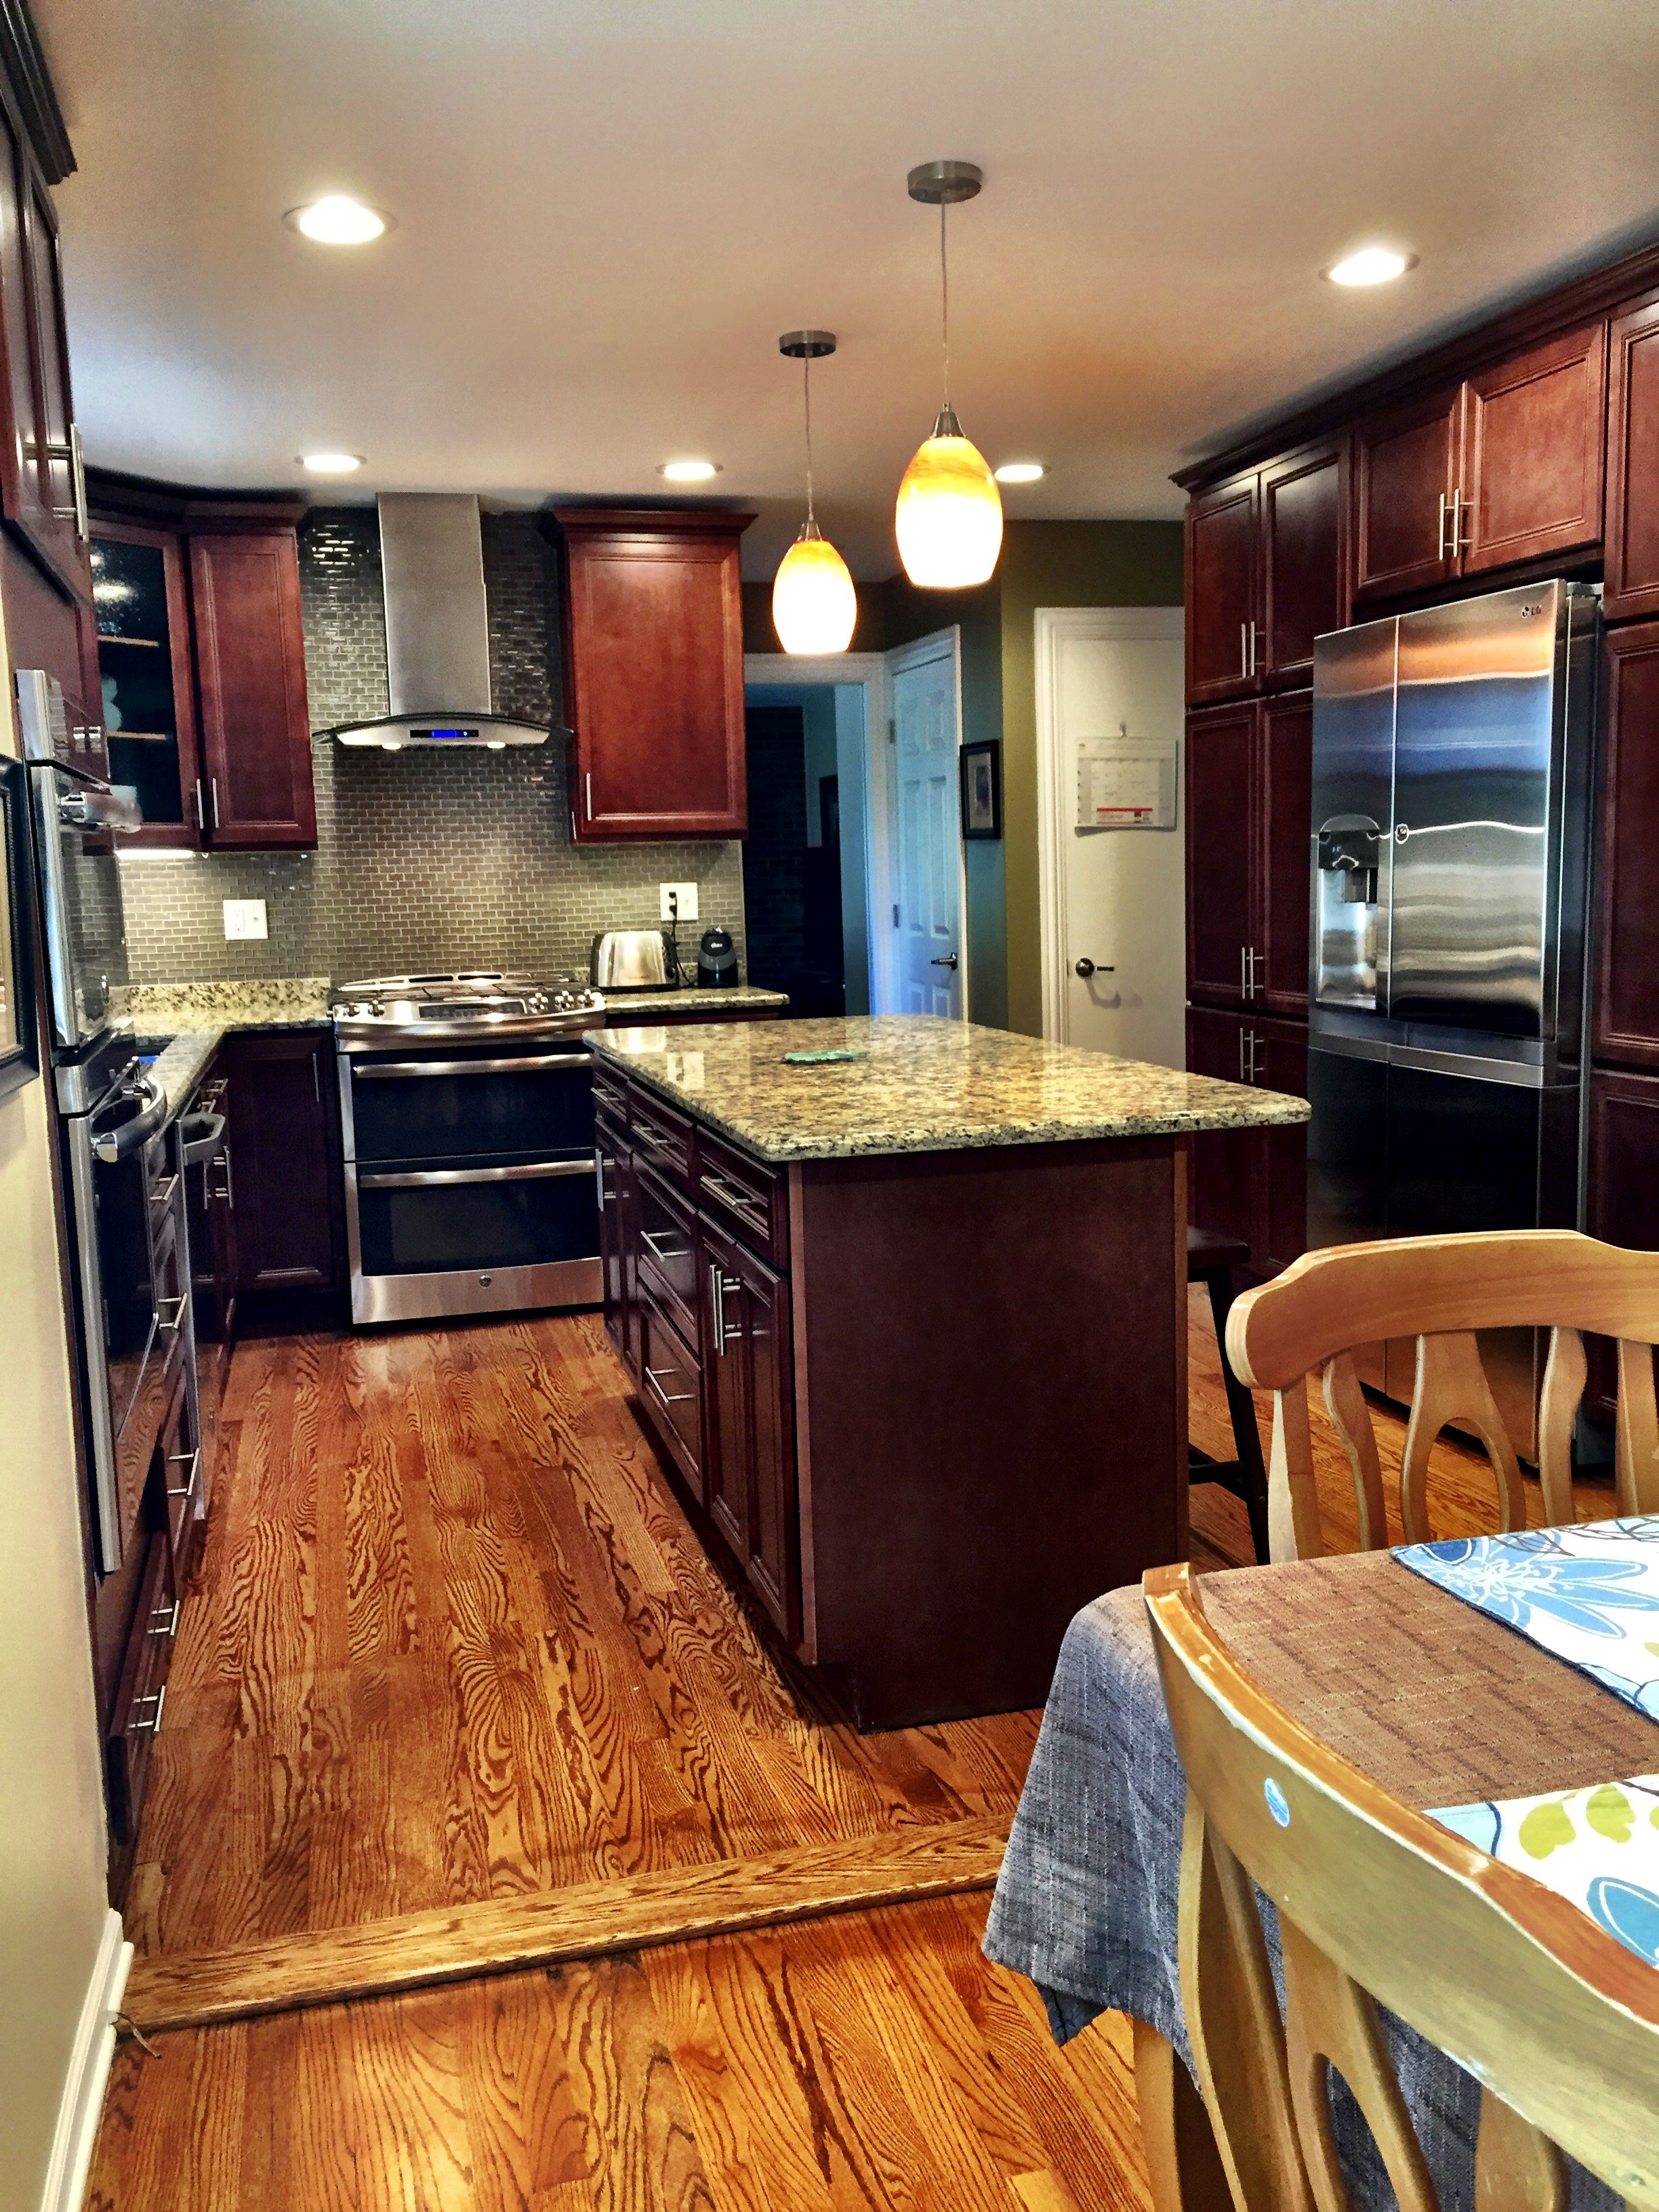 Kitchen Remodel With Oak Floors, Giallo Granite, SMART Cabinets Style:  Atlantic, Color